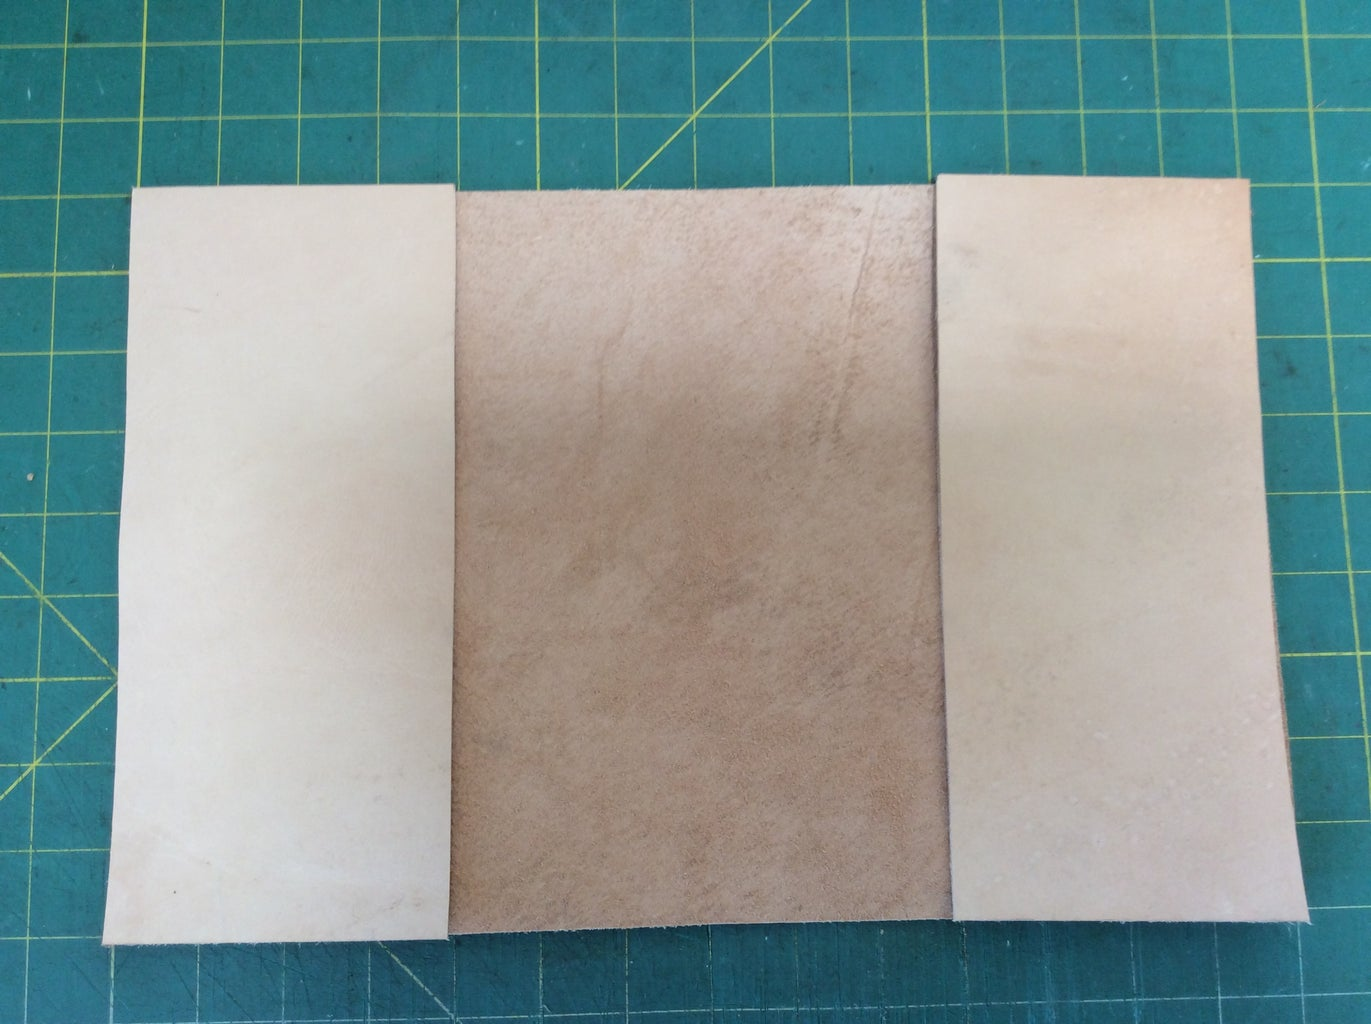 CUTTING INSIDE POCKETS FOR THE COVER